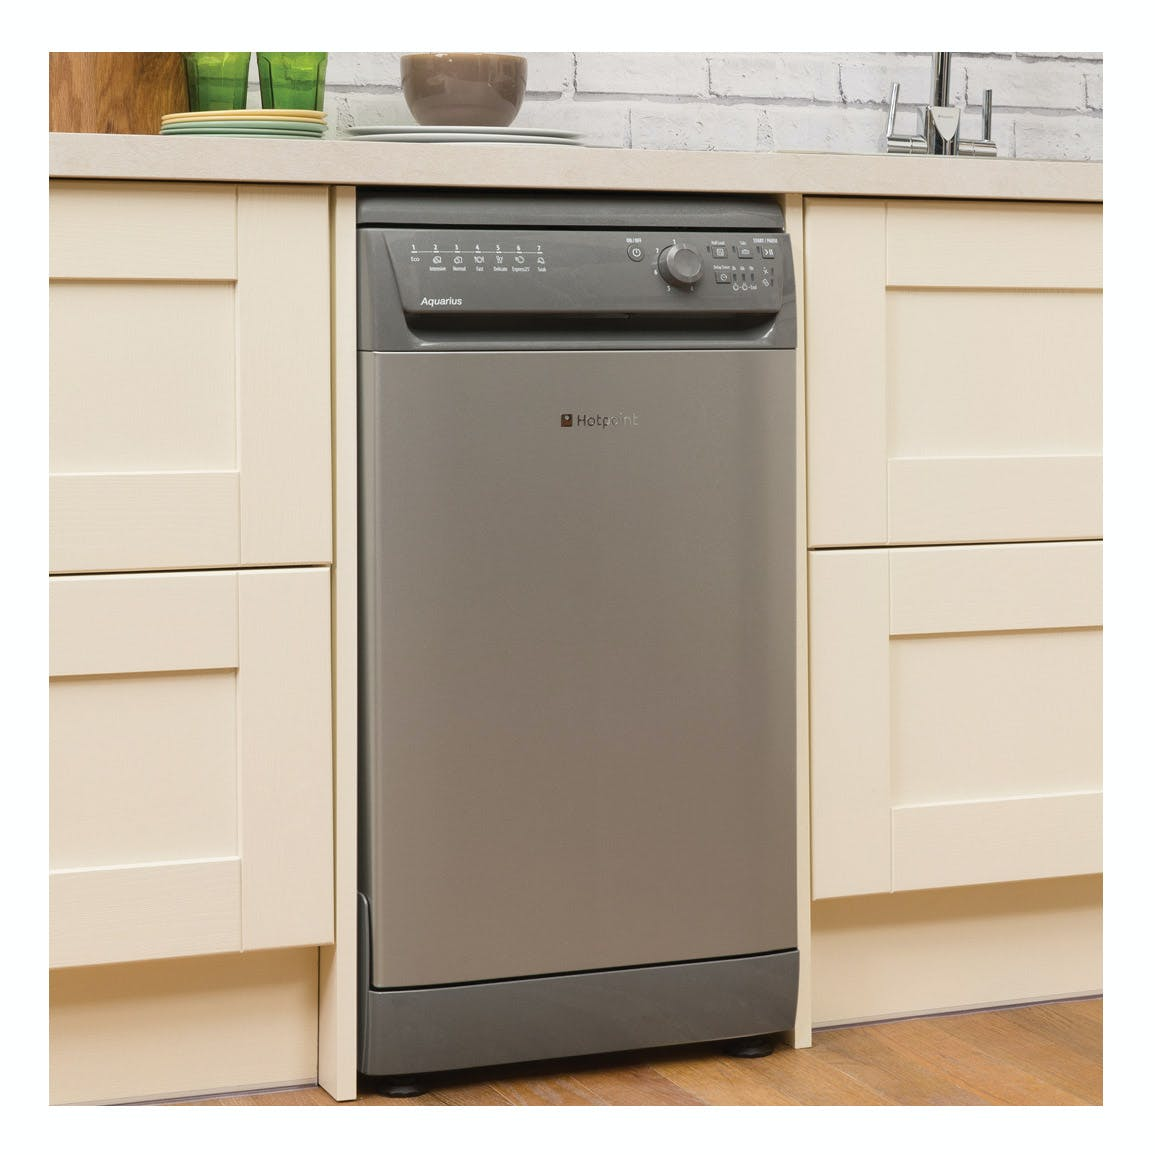 hotpoint sial11010g 45cm aquarius slimline dishwasher in. Black Bedroom Furniture Sets. Home Design Ideas